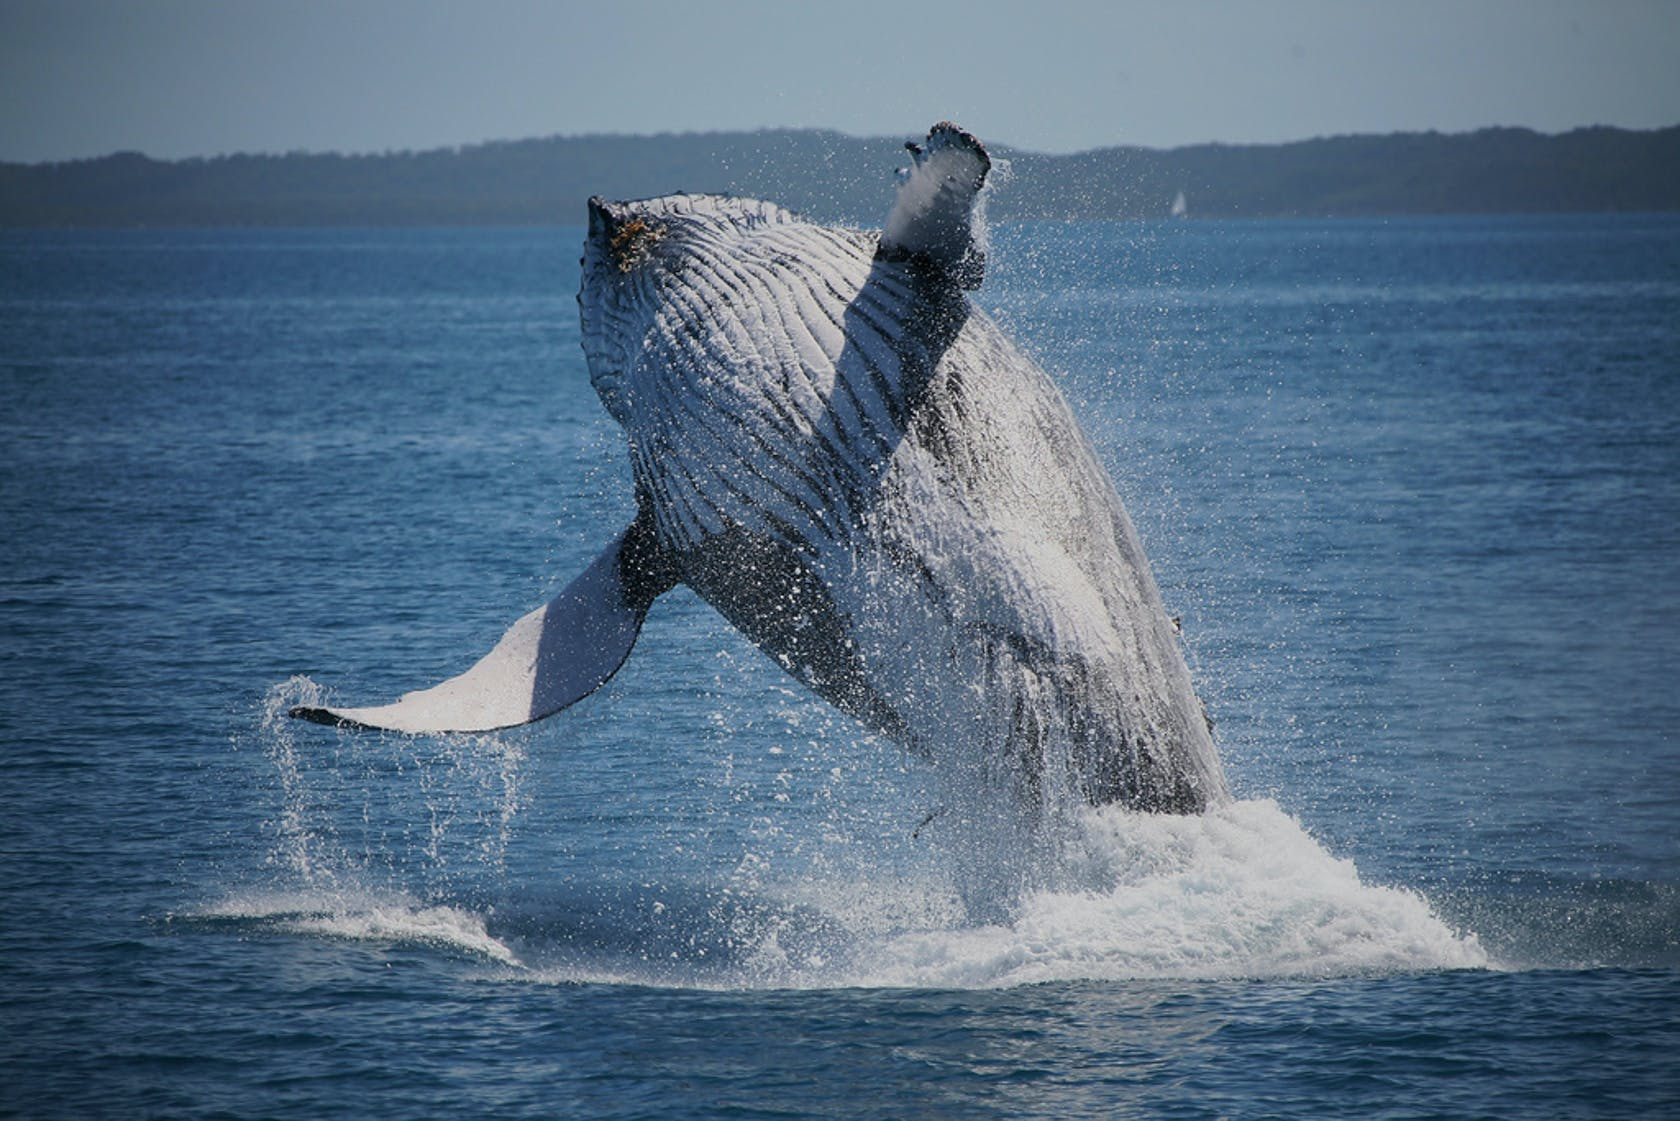 Whales breaching safely in the Bay